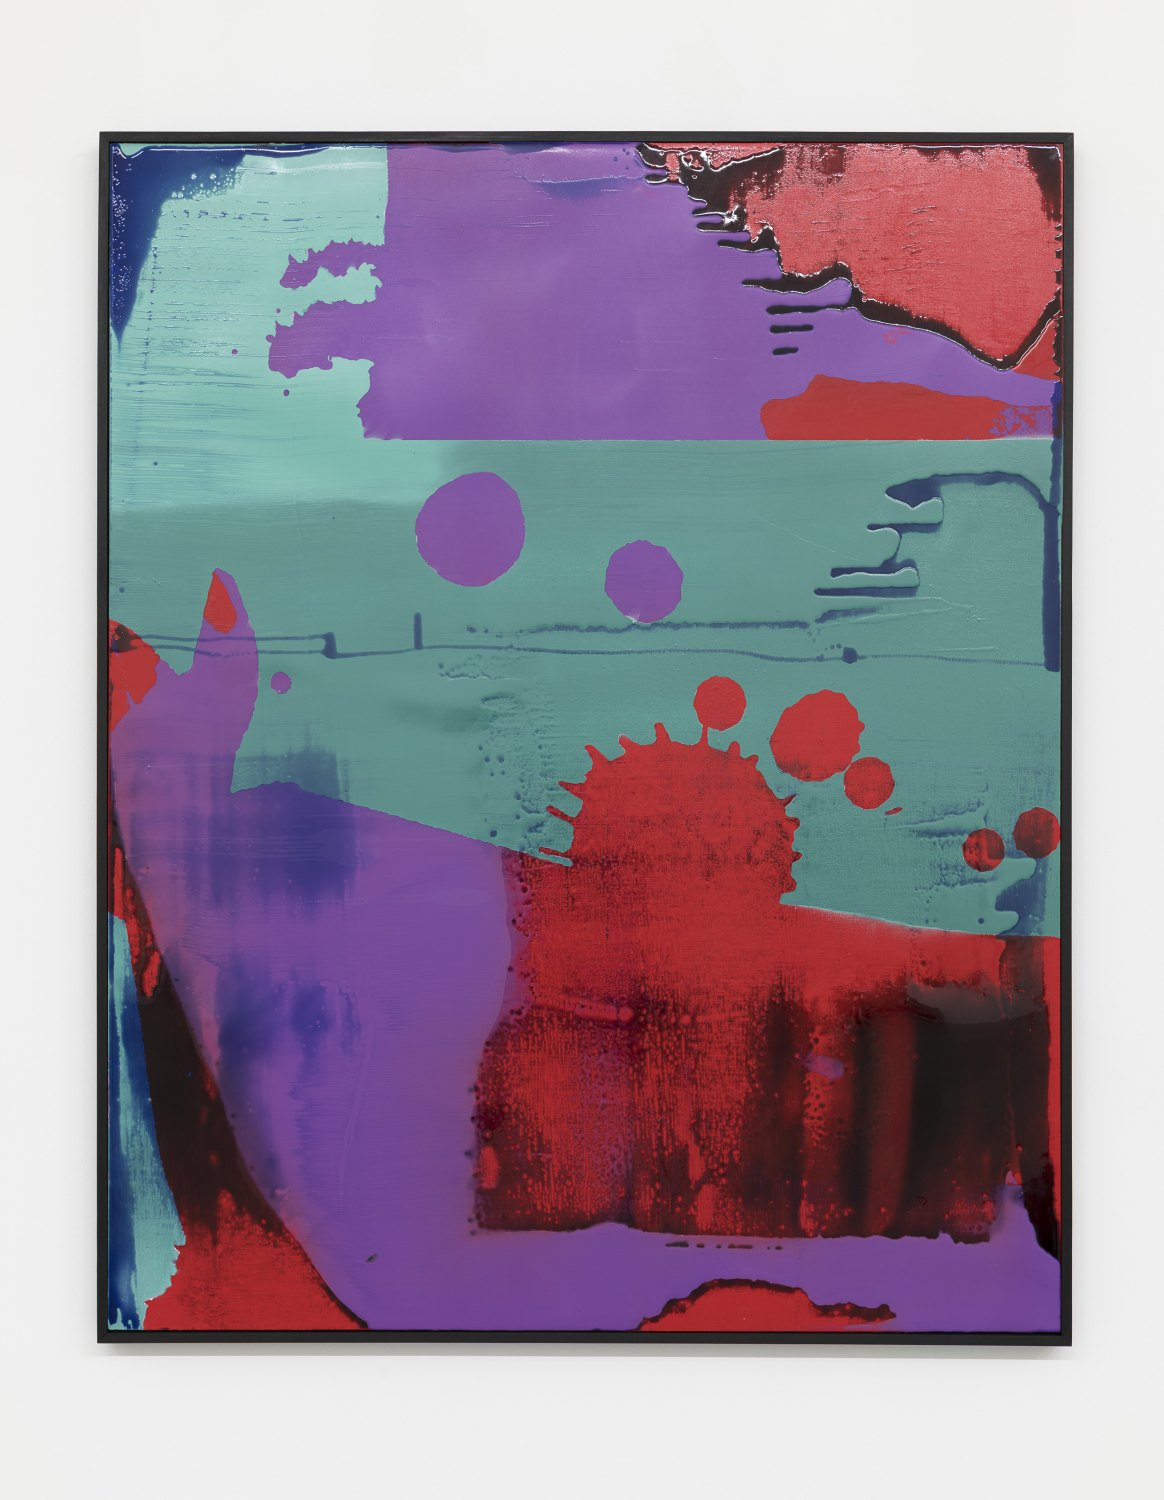 Alex Hubbard Too Pretty to Eat, 2018 Wooden panel, acrylic, pigmented urethane, fiberglass, epoxy resin on linen 155 x 125 x 5 cm